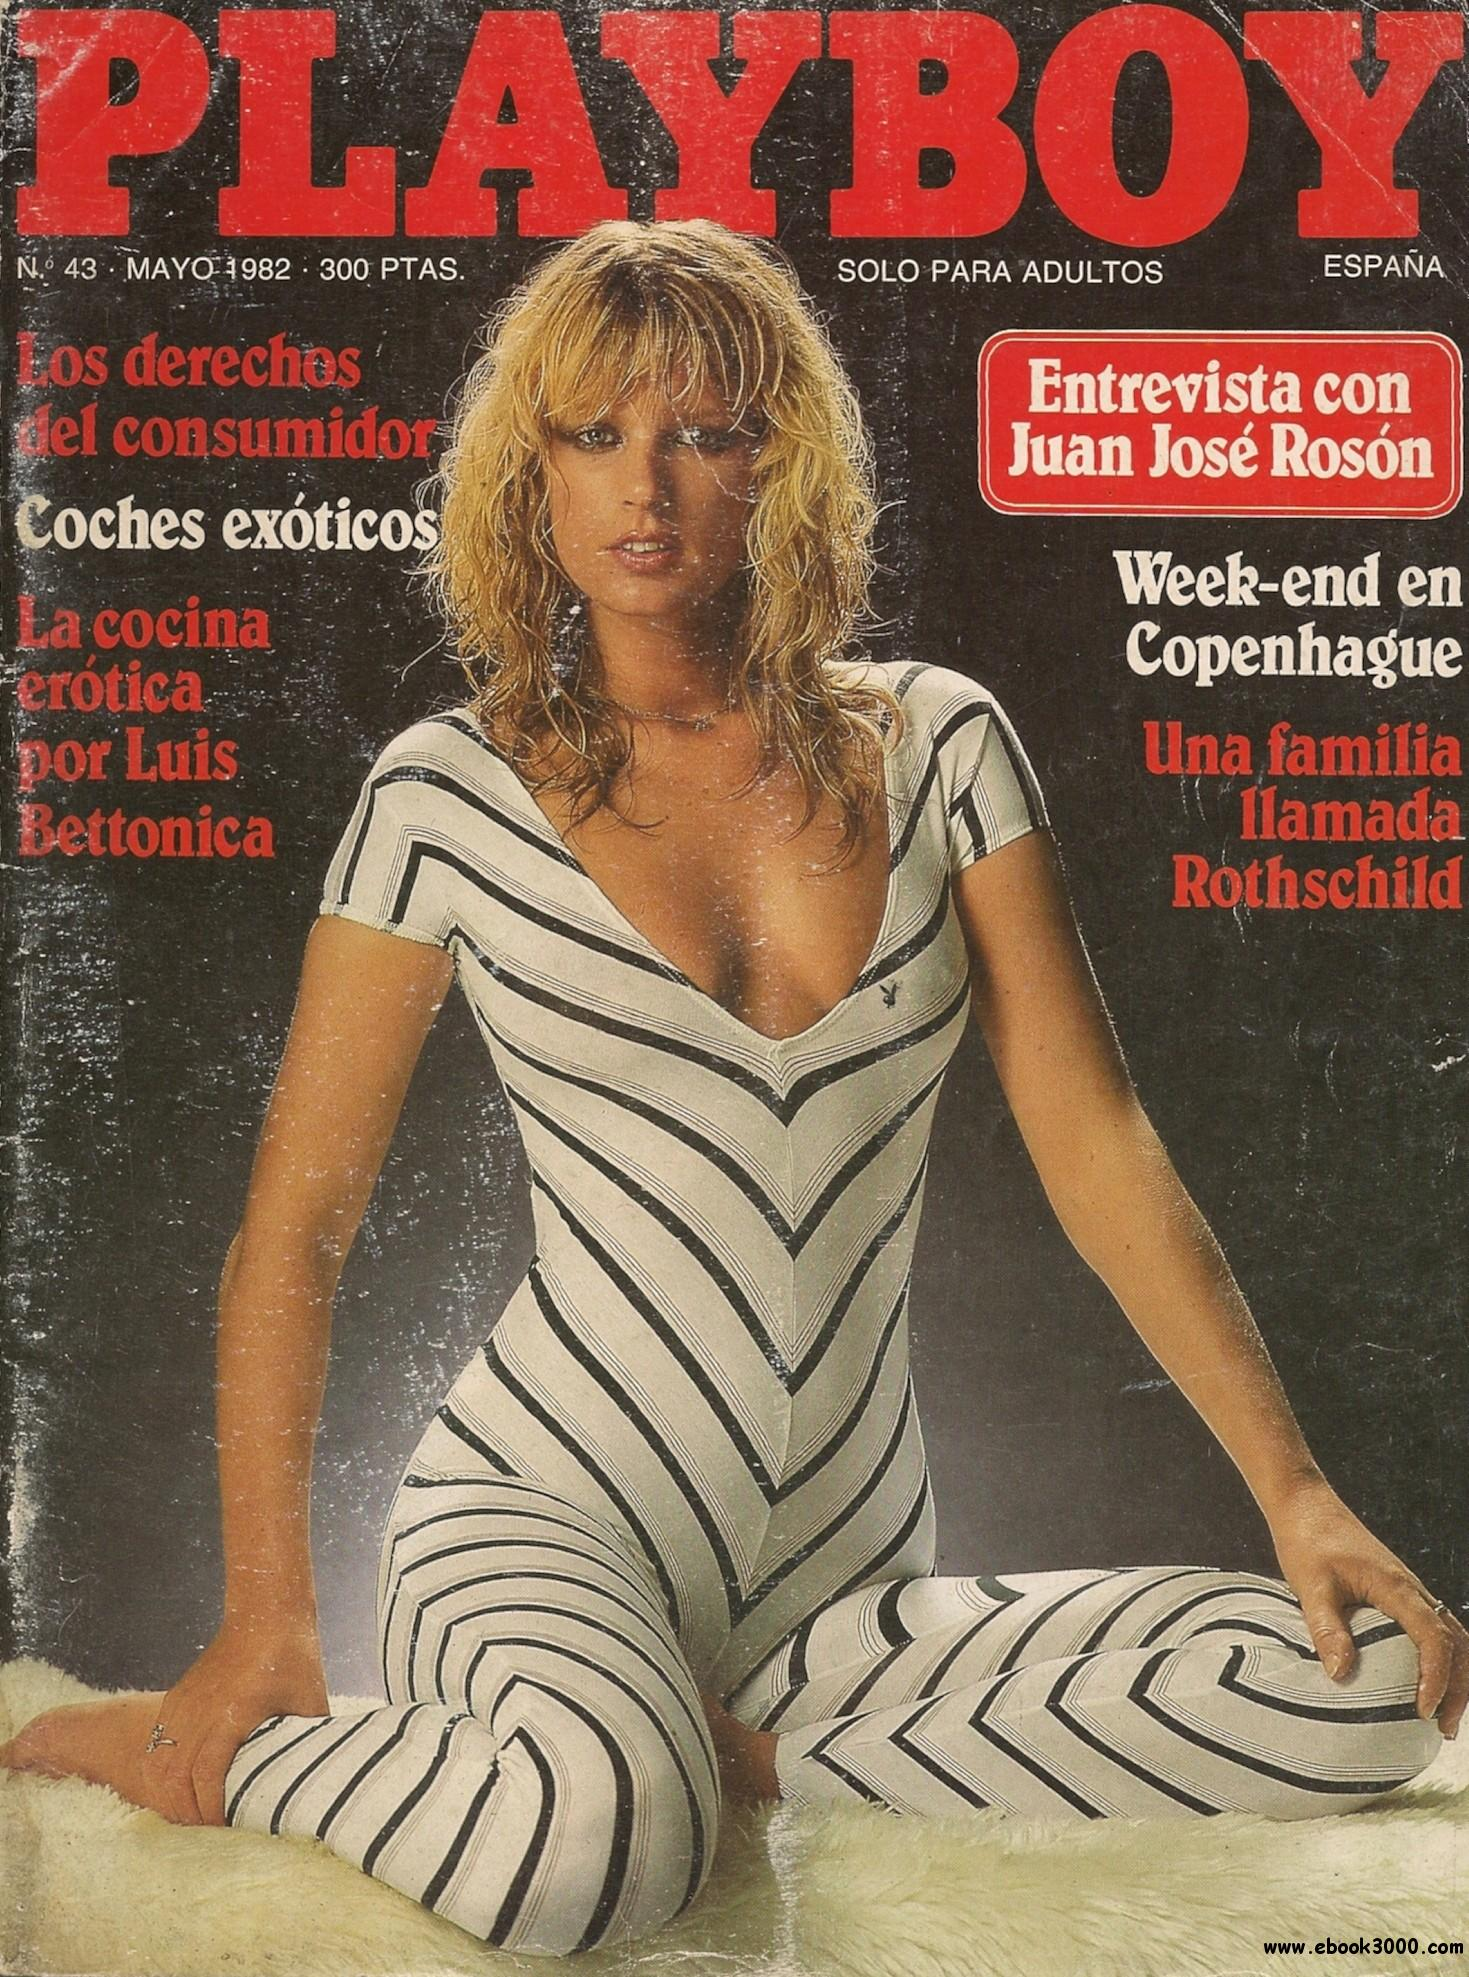 Playboy Spain - May 1982 free download